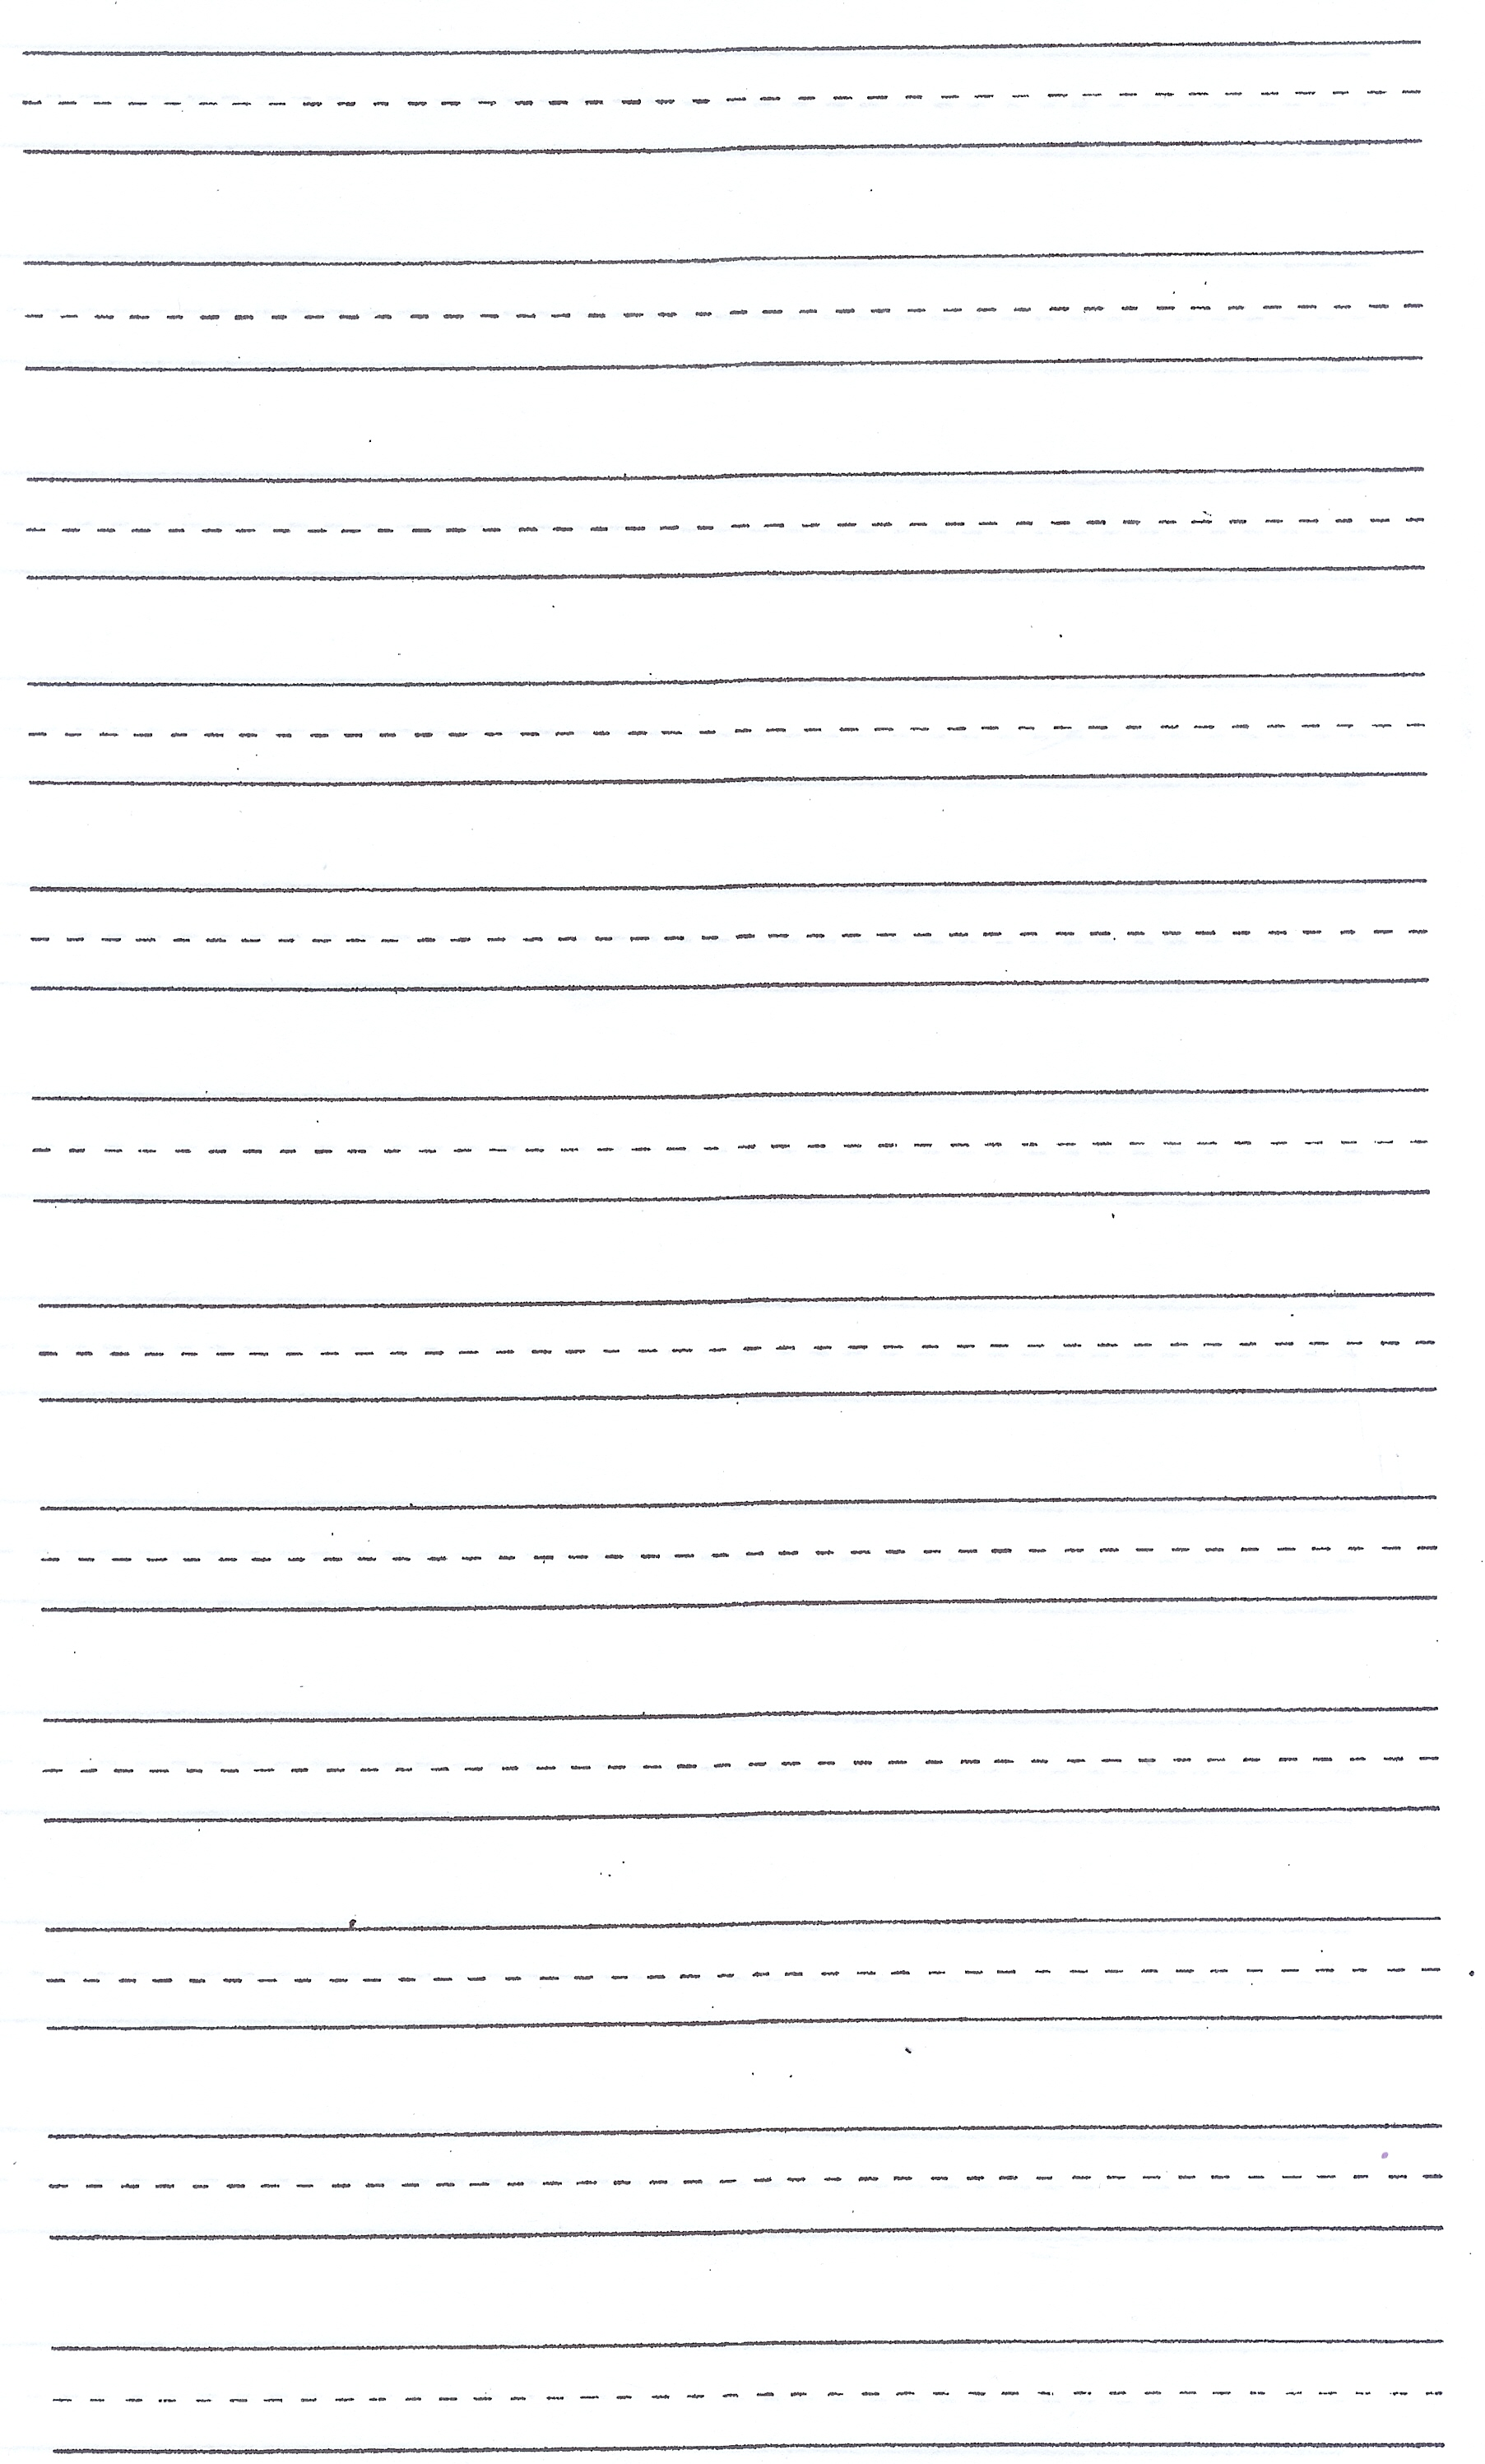 Blank Handwriting Sheets For Second Grade